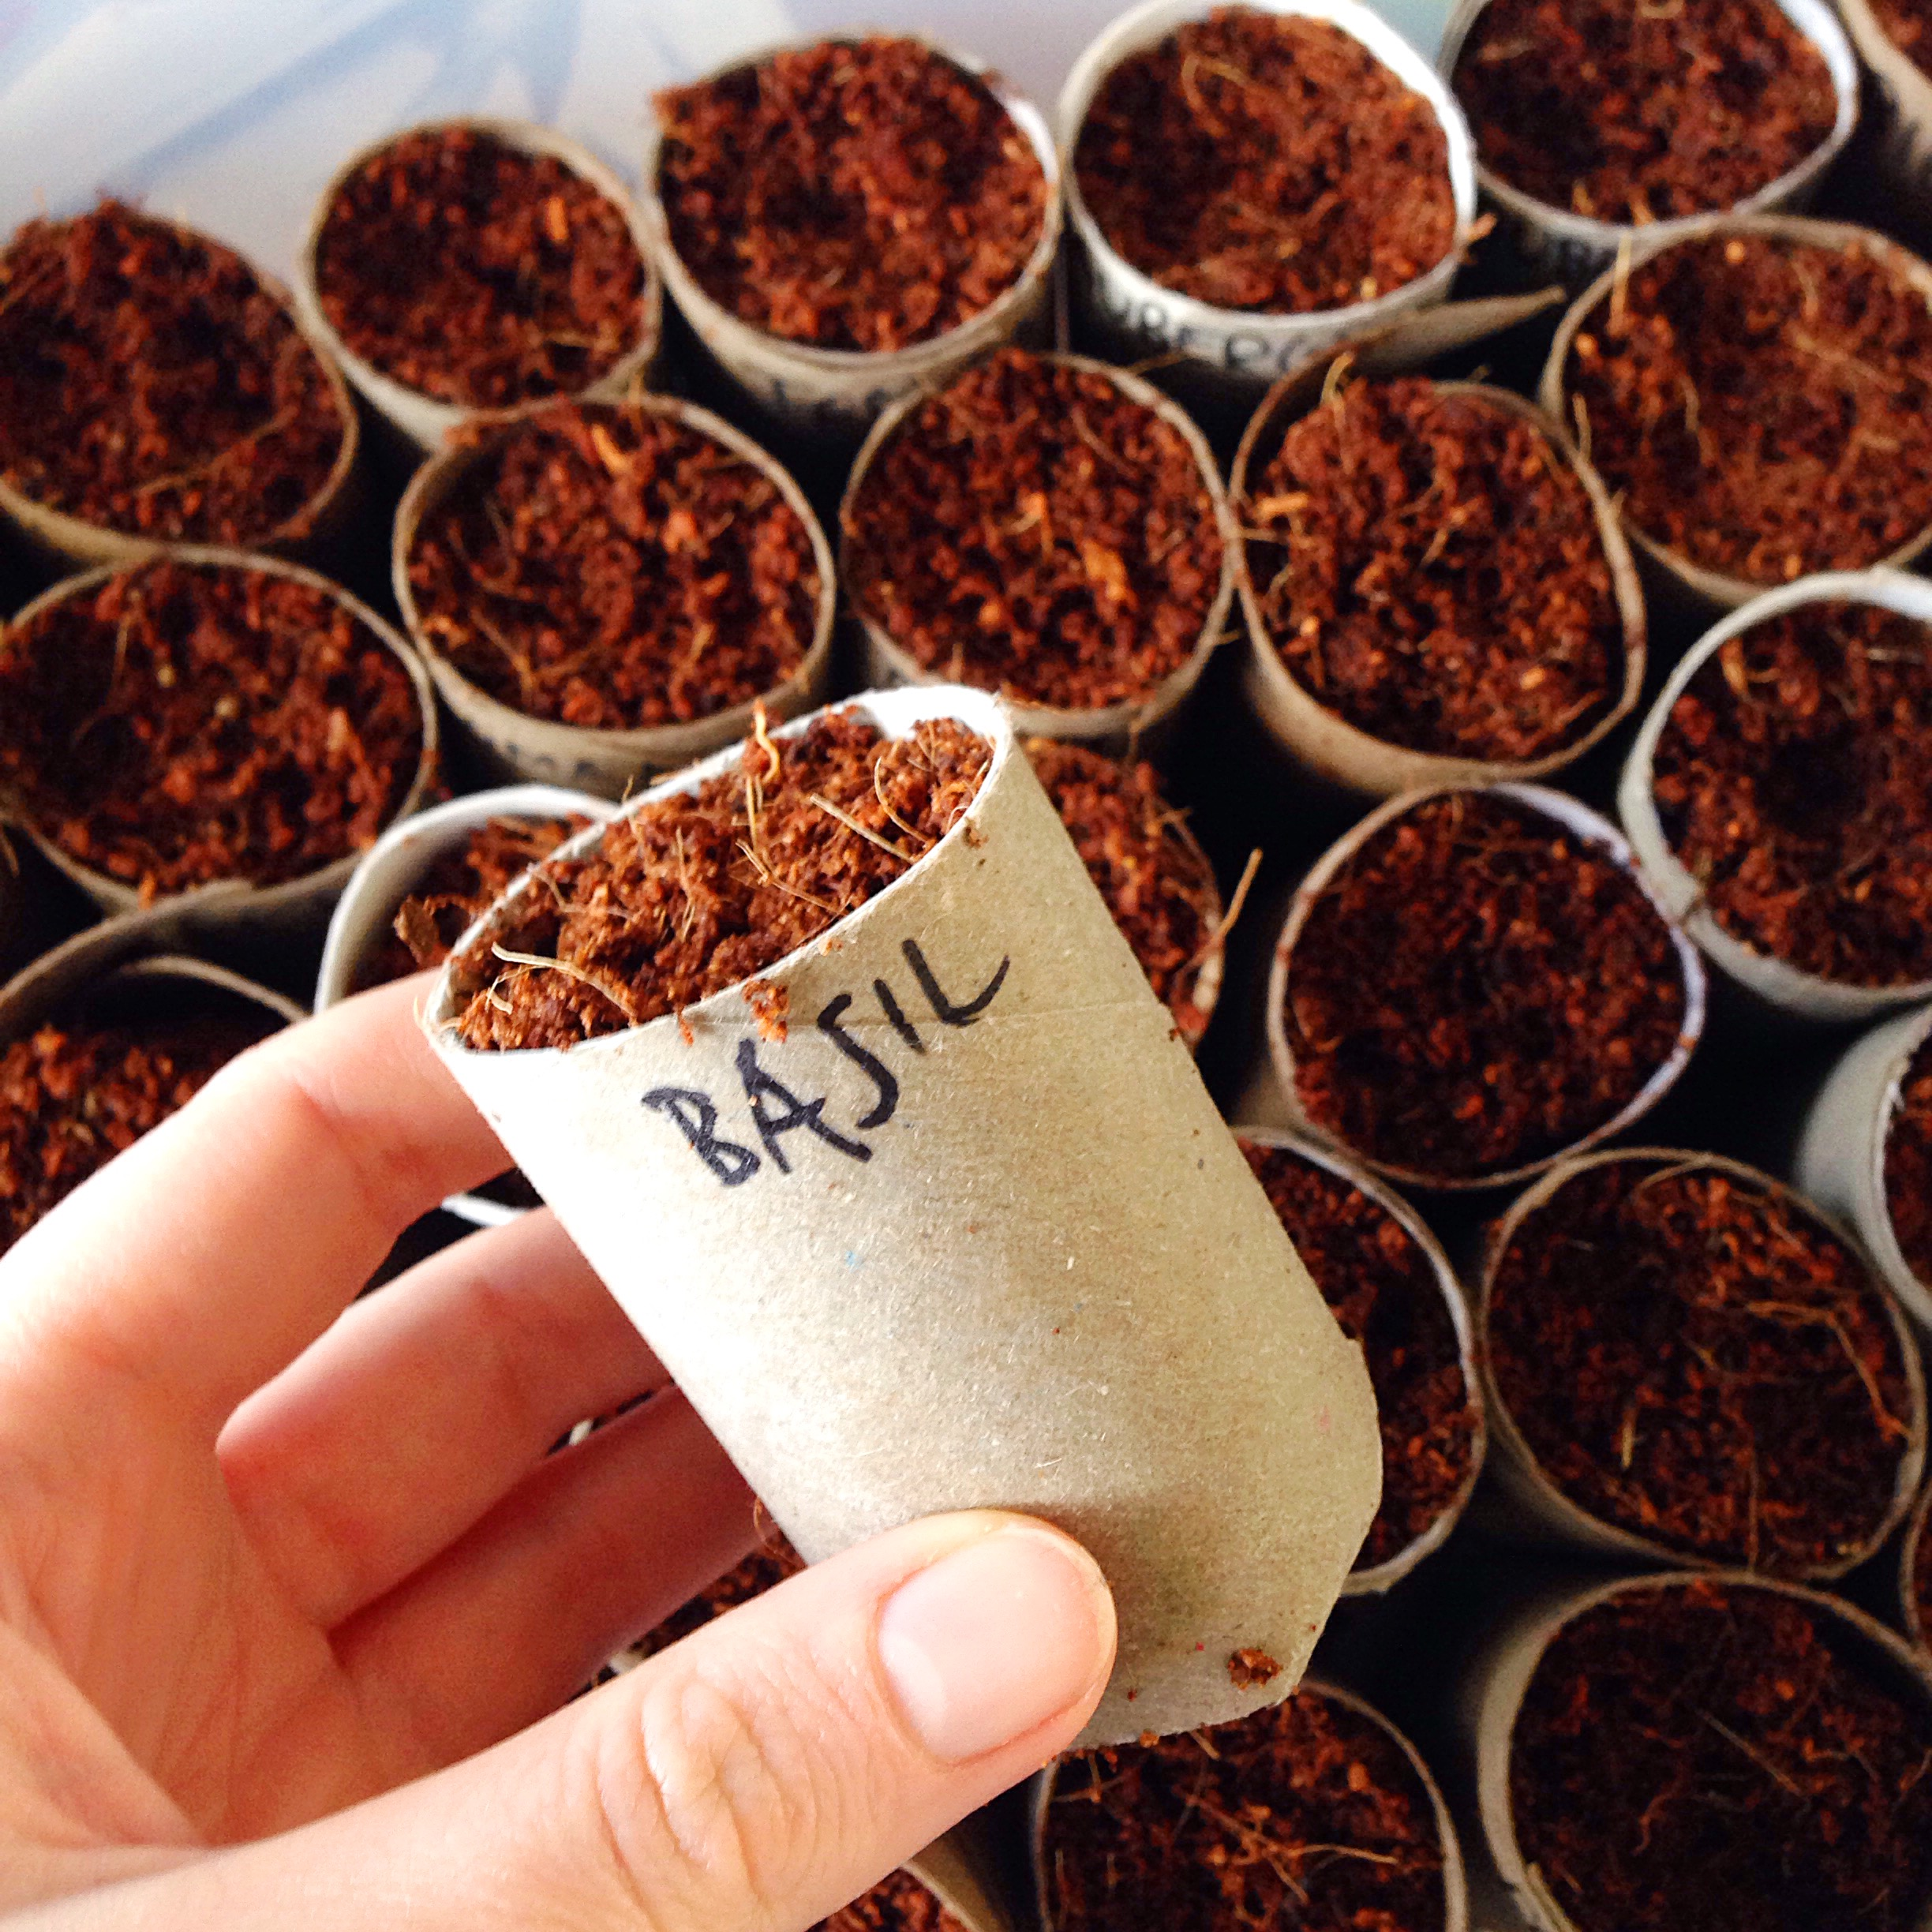 DIY - Biodegradable toilet roll planters